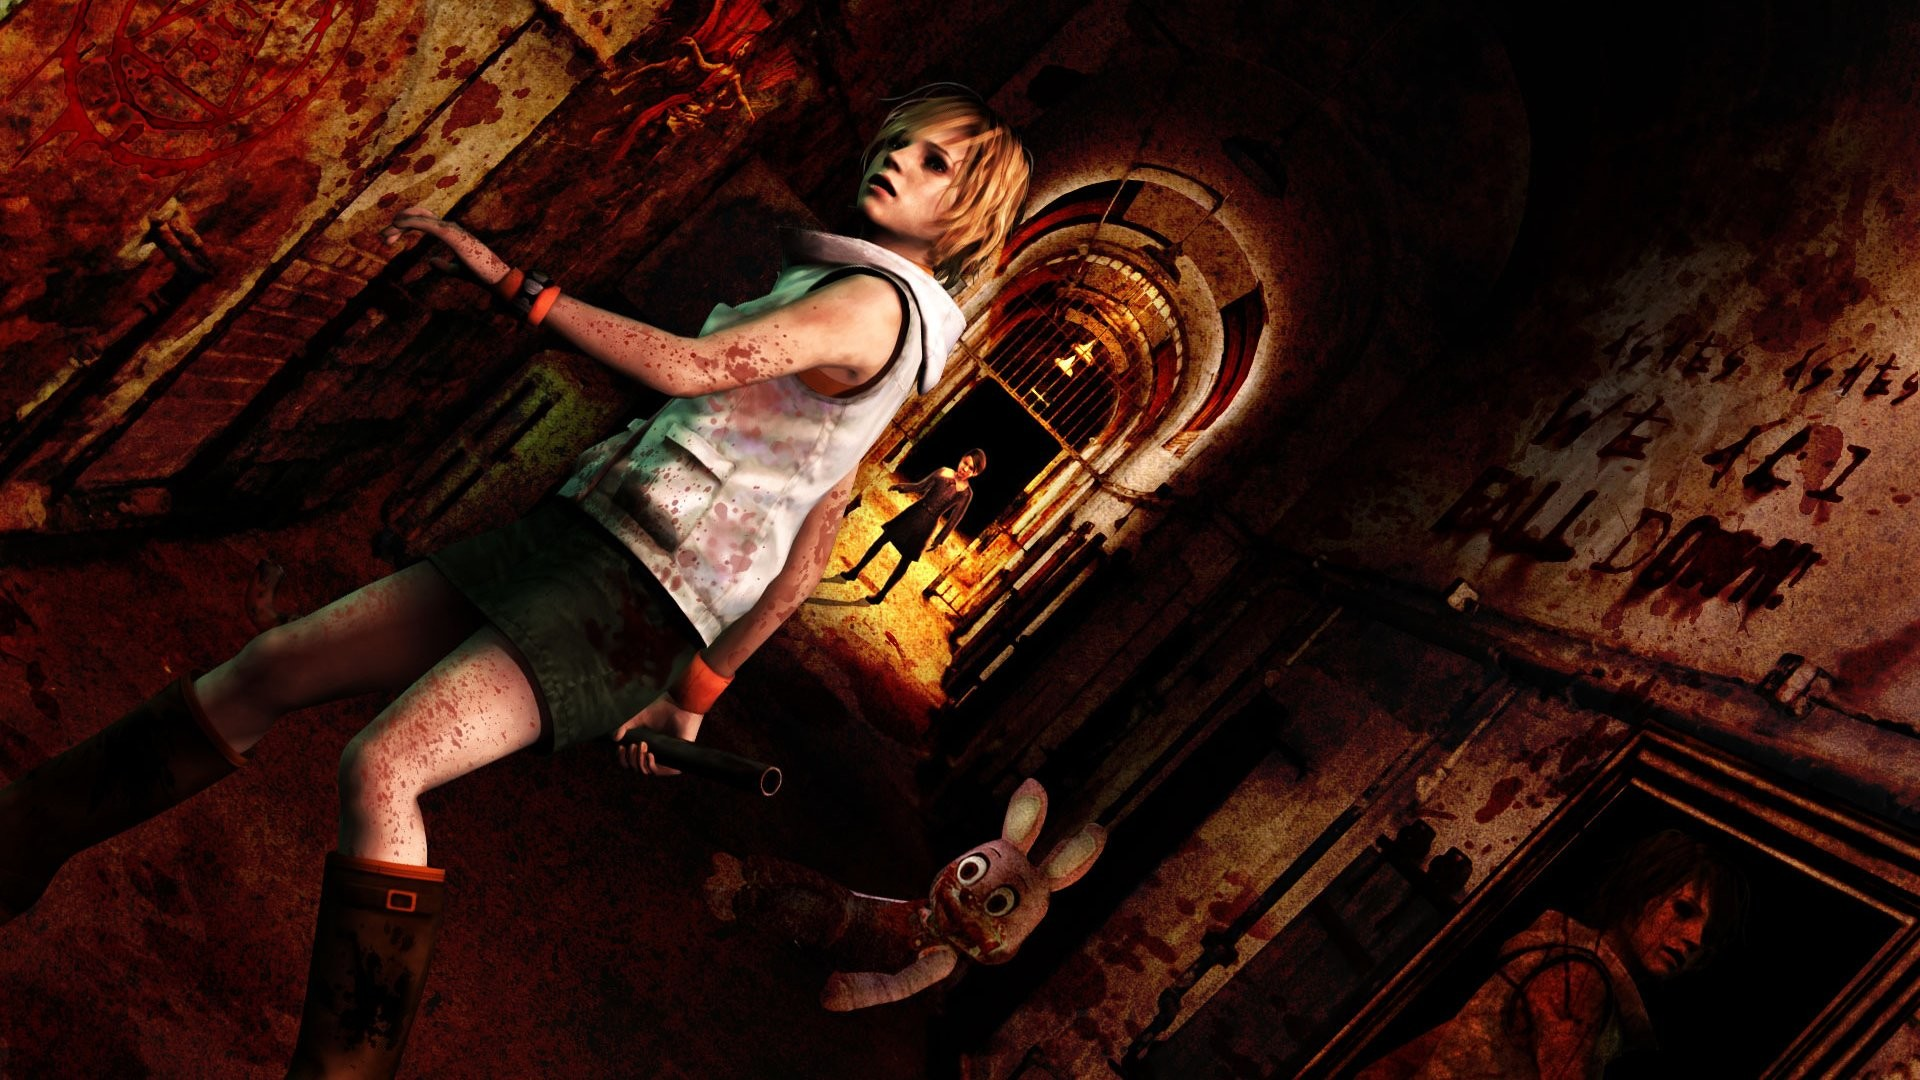 Silent Hill Wallpapers ·① WallpaperTag